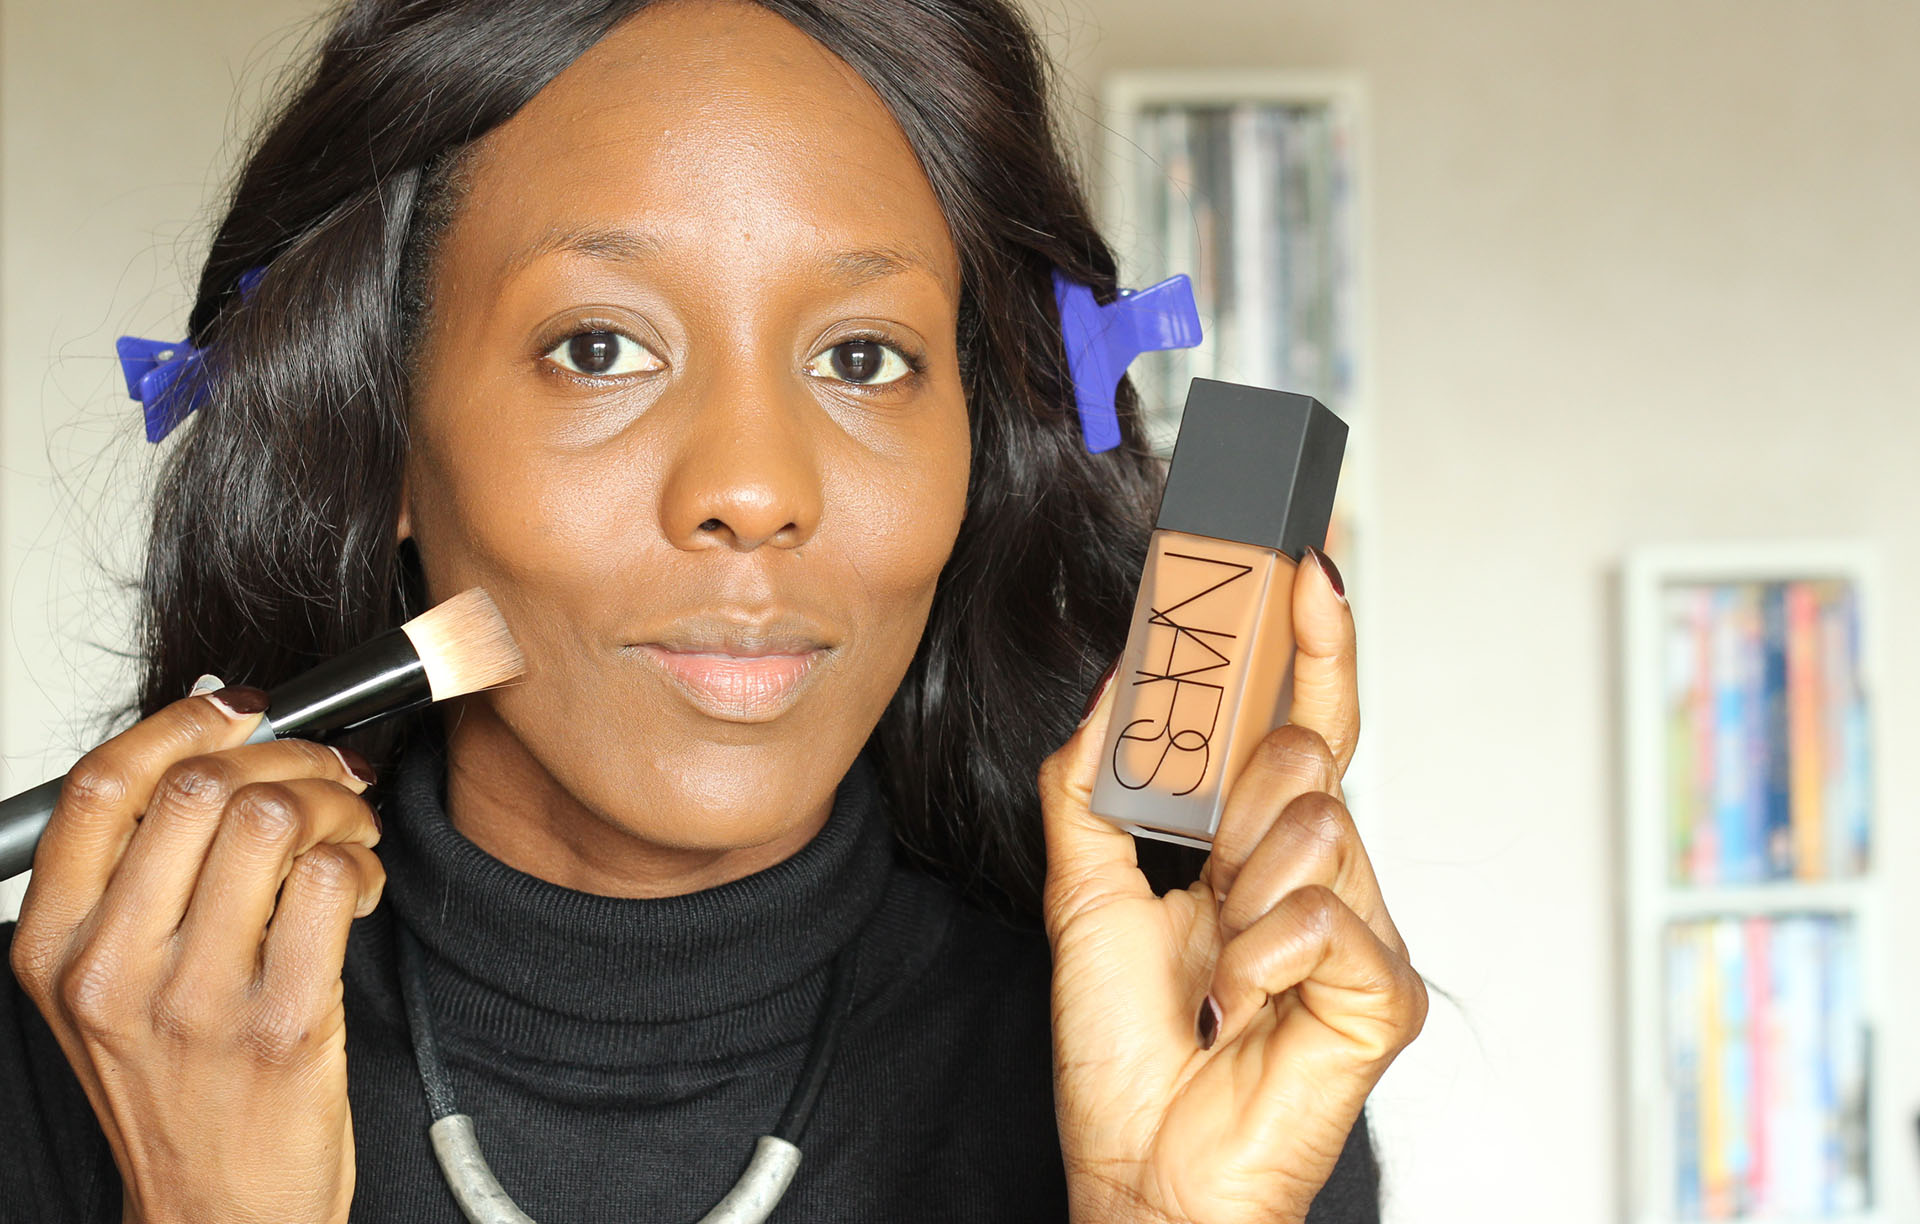 nunaavane-step-by-step-flawless-makeup-nars-foundation